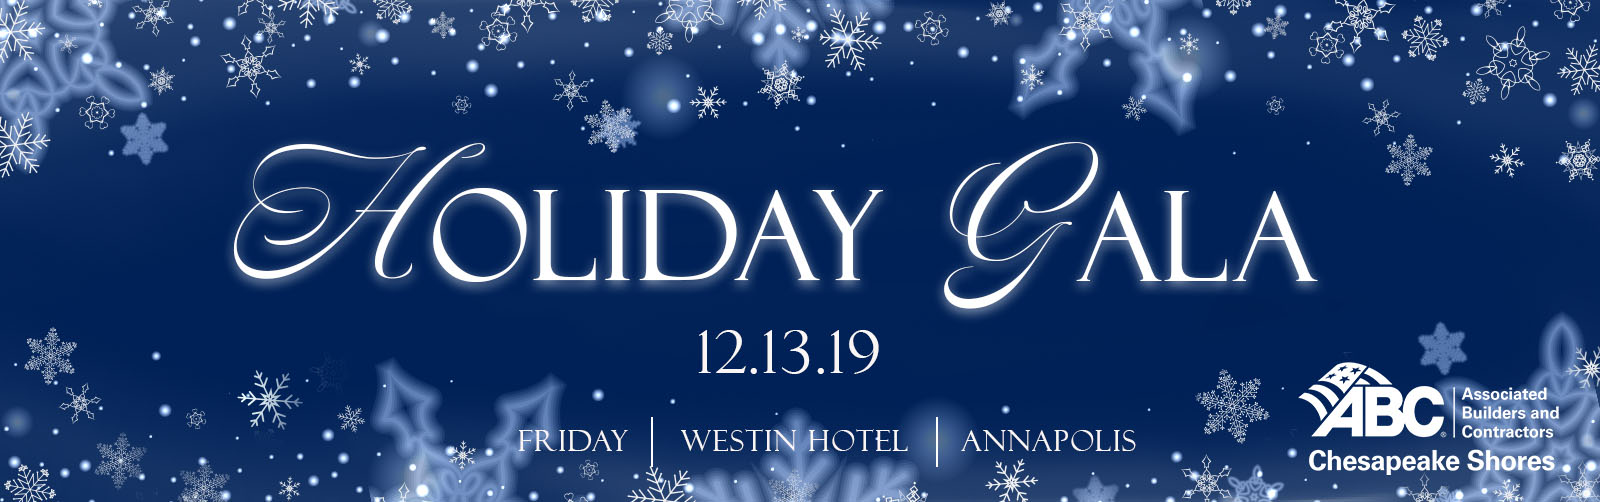 121319 Holiday Gala Banner 1172X411 NEW